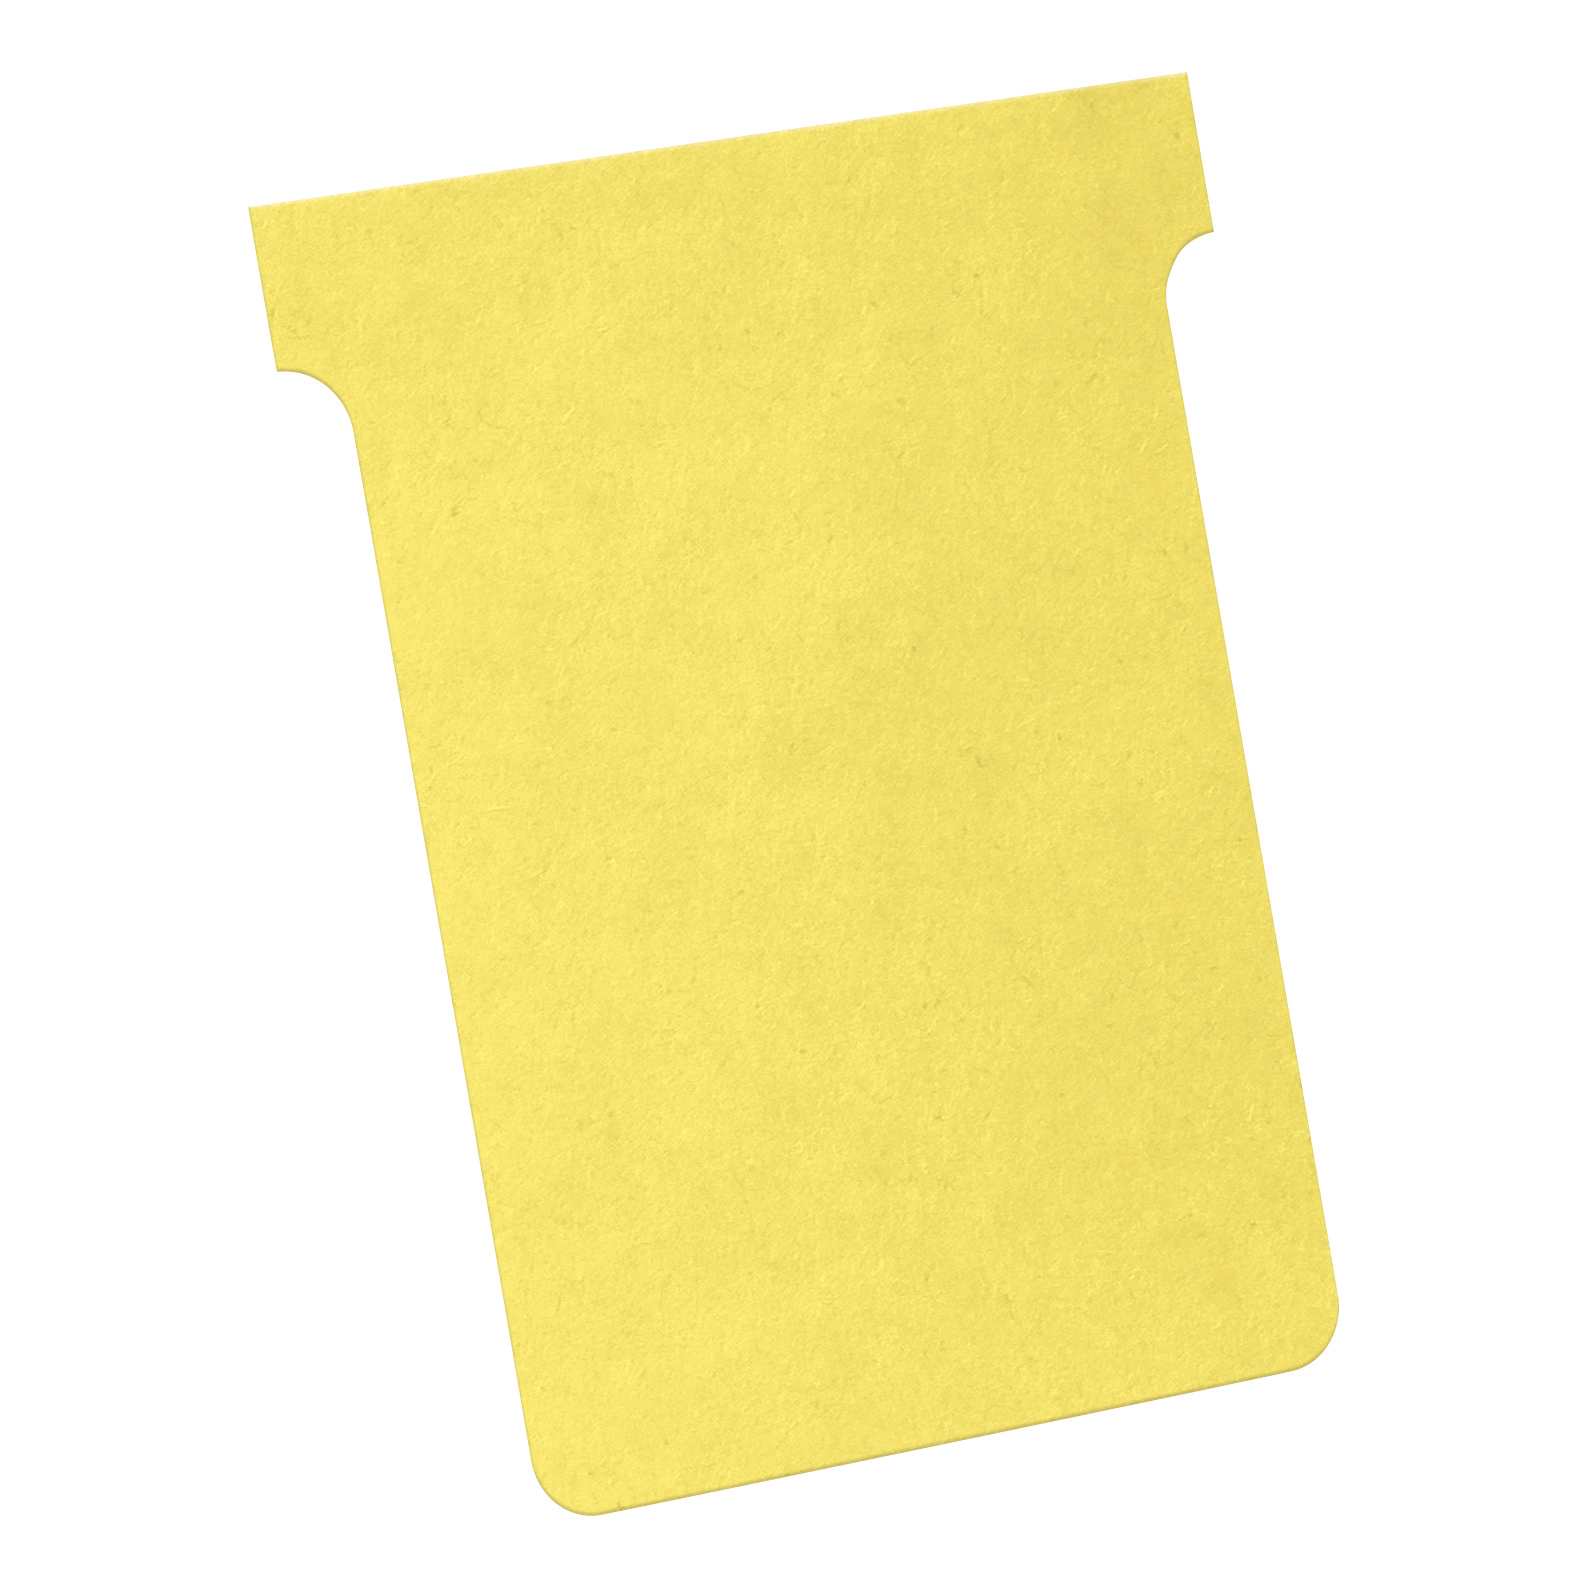 T Cards Nobo T-Cards 160gsm Tab Top 15mm W92x Bottom W80x Full H120mm Size 3 Yellow Ref 2003004 Pack 100